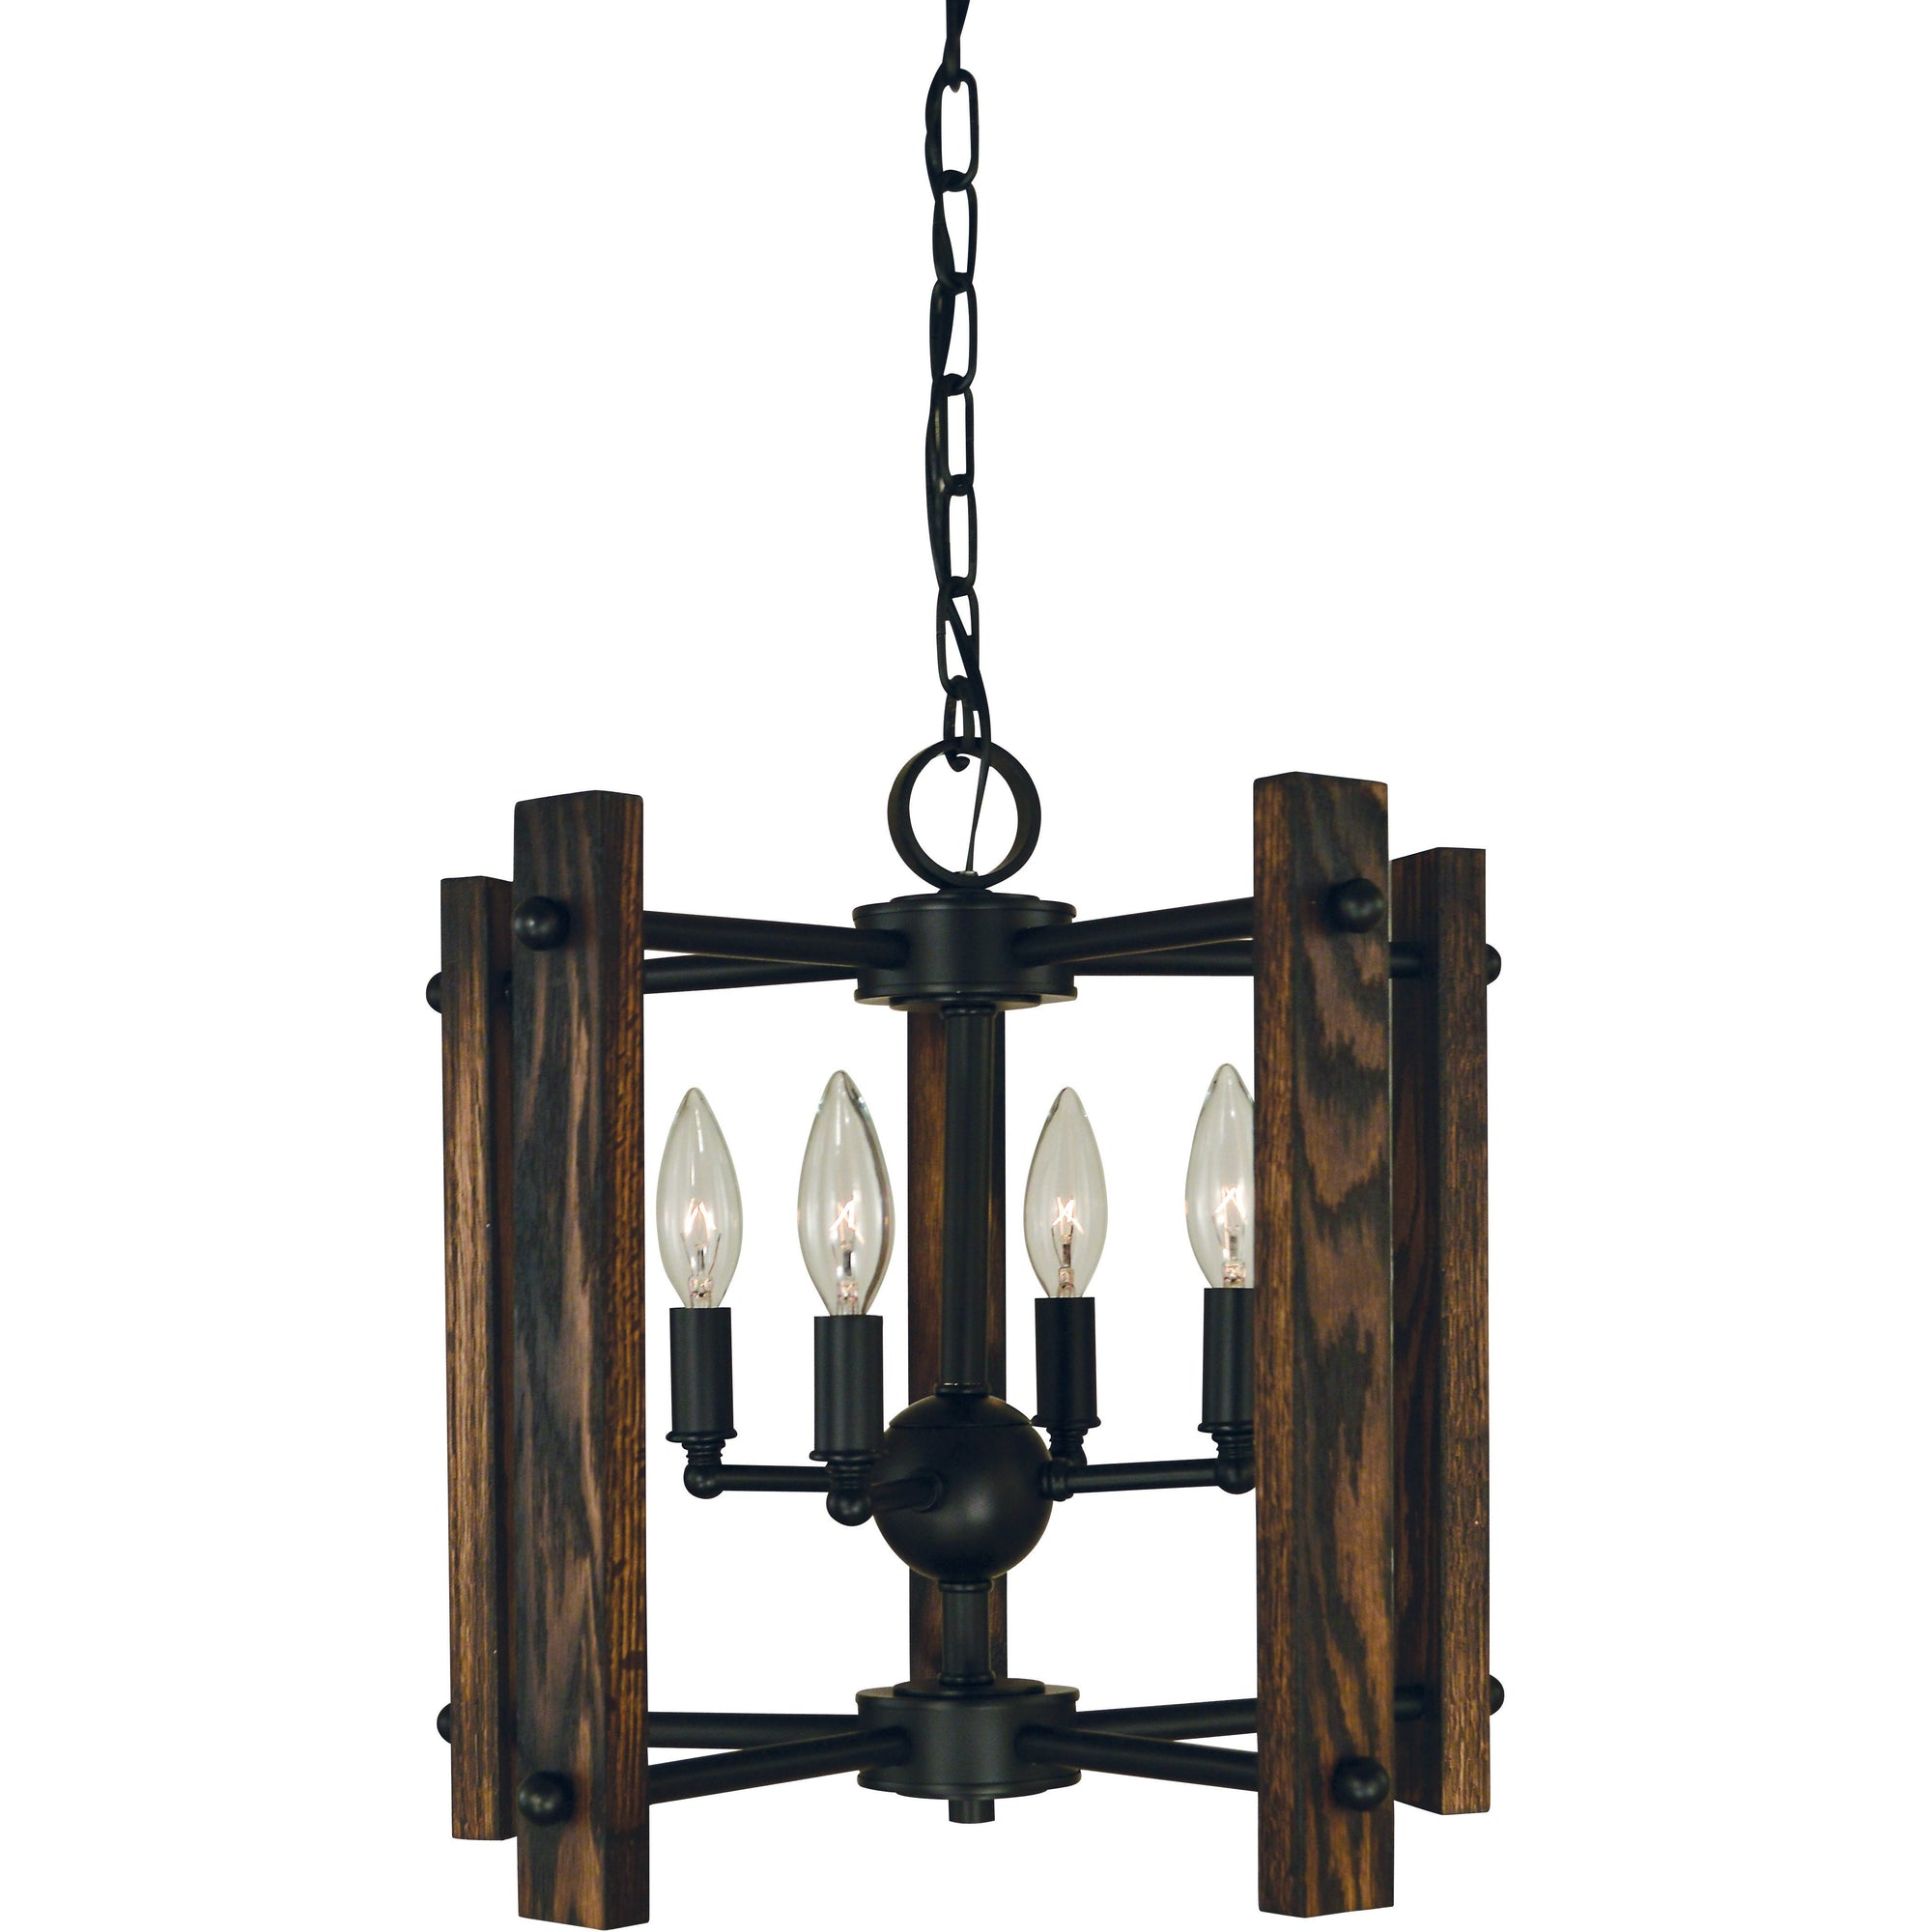 Framburg Dual Mounts Matte Black 4-Light Matte Black Modern Farmhouse Dual Mount Chandelier by Framburg 5400